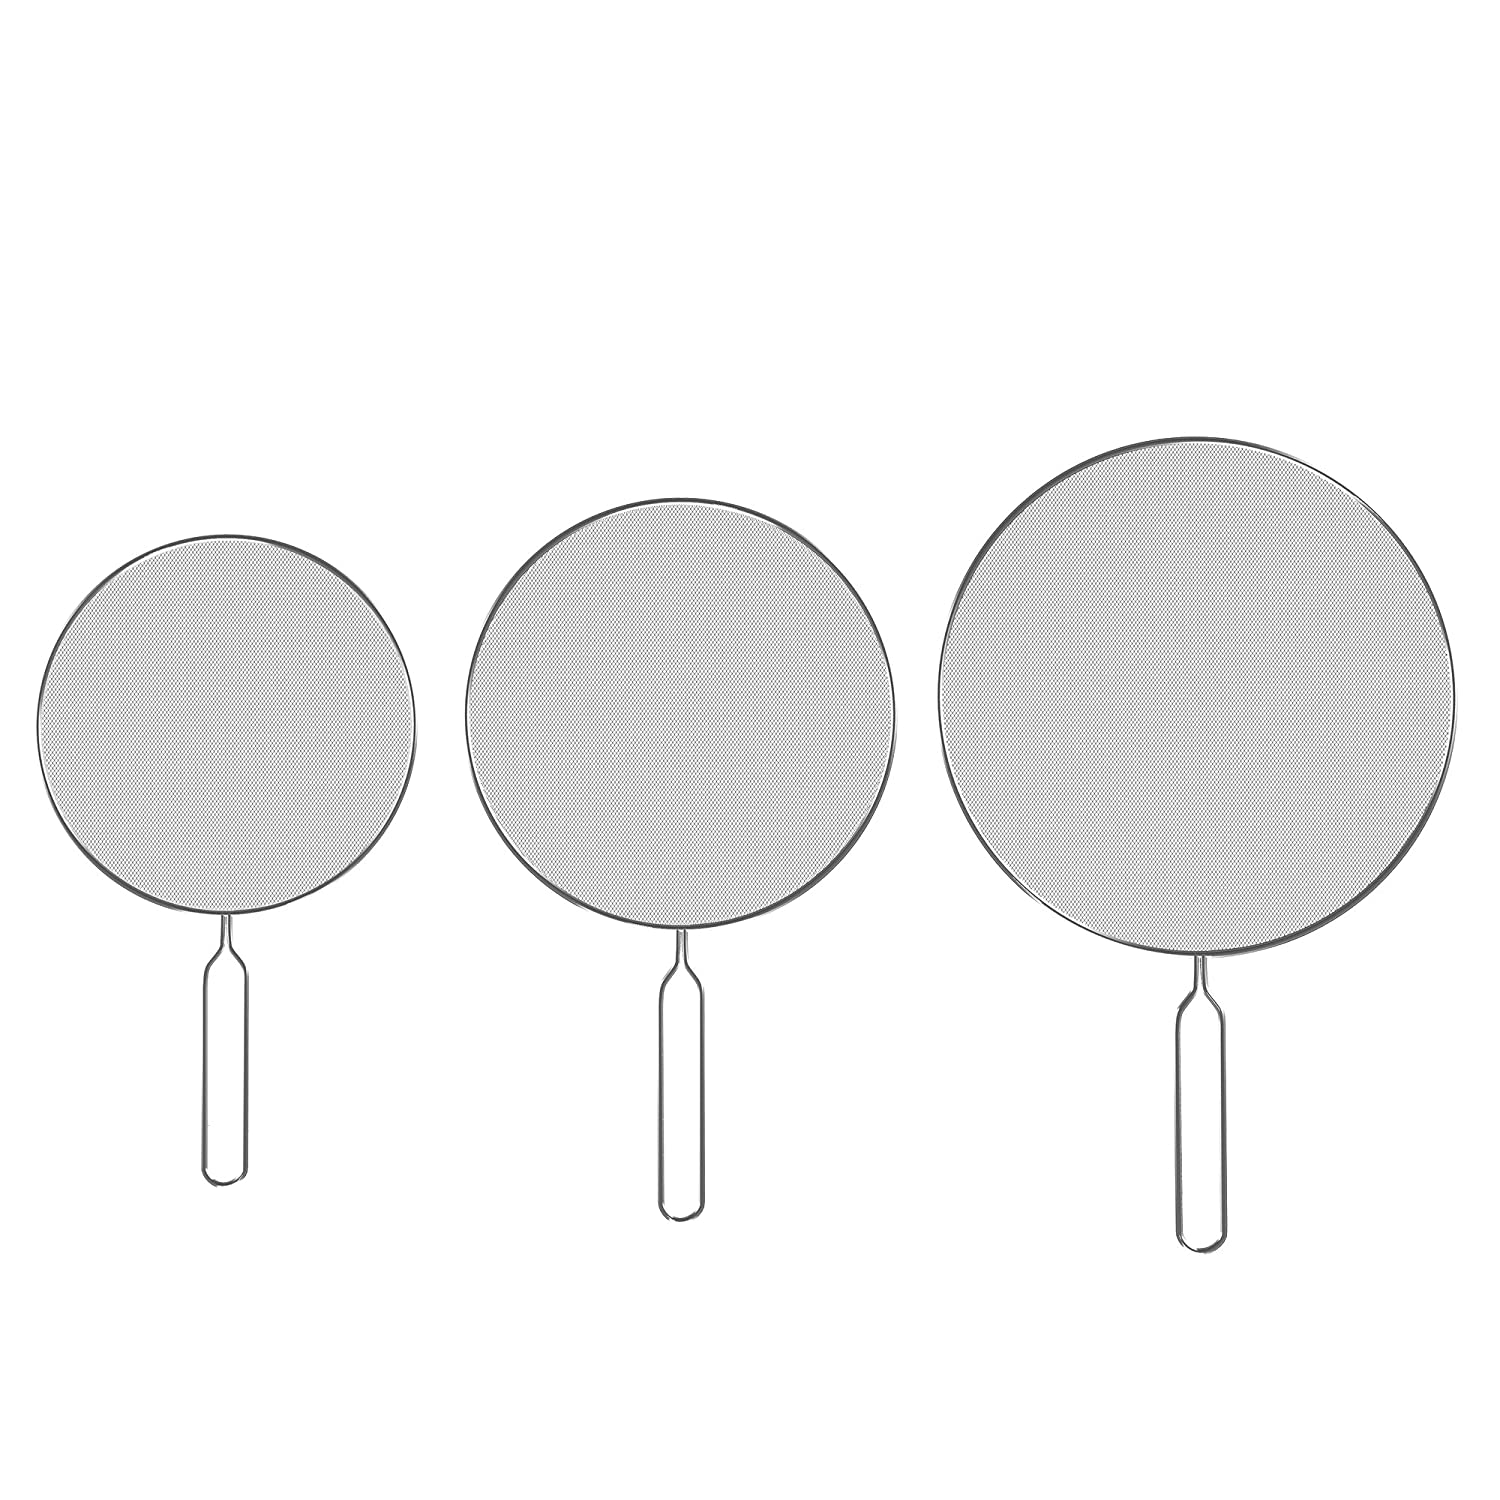 Classic Cuisine 82-KIT1046 Splatter Screen Guards, Small, Medium and Large, Stainless Steel